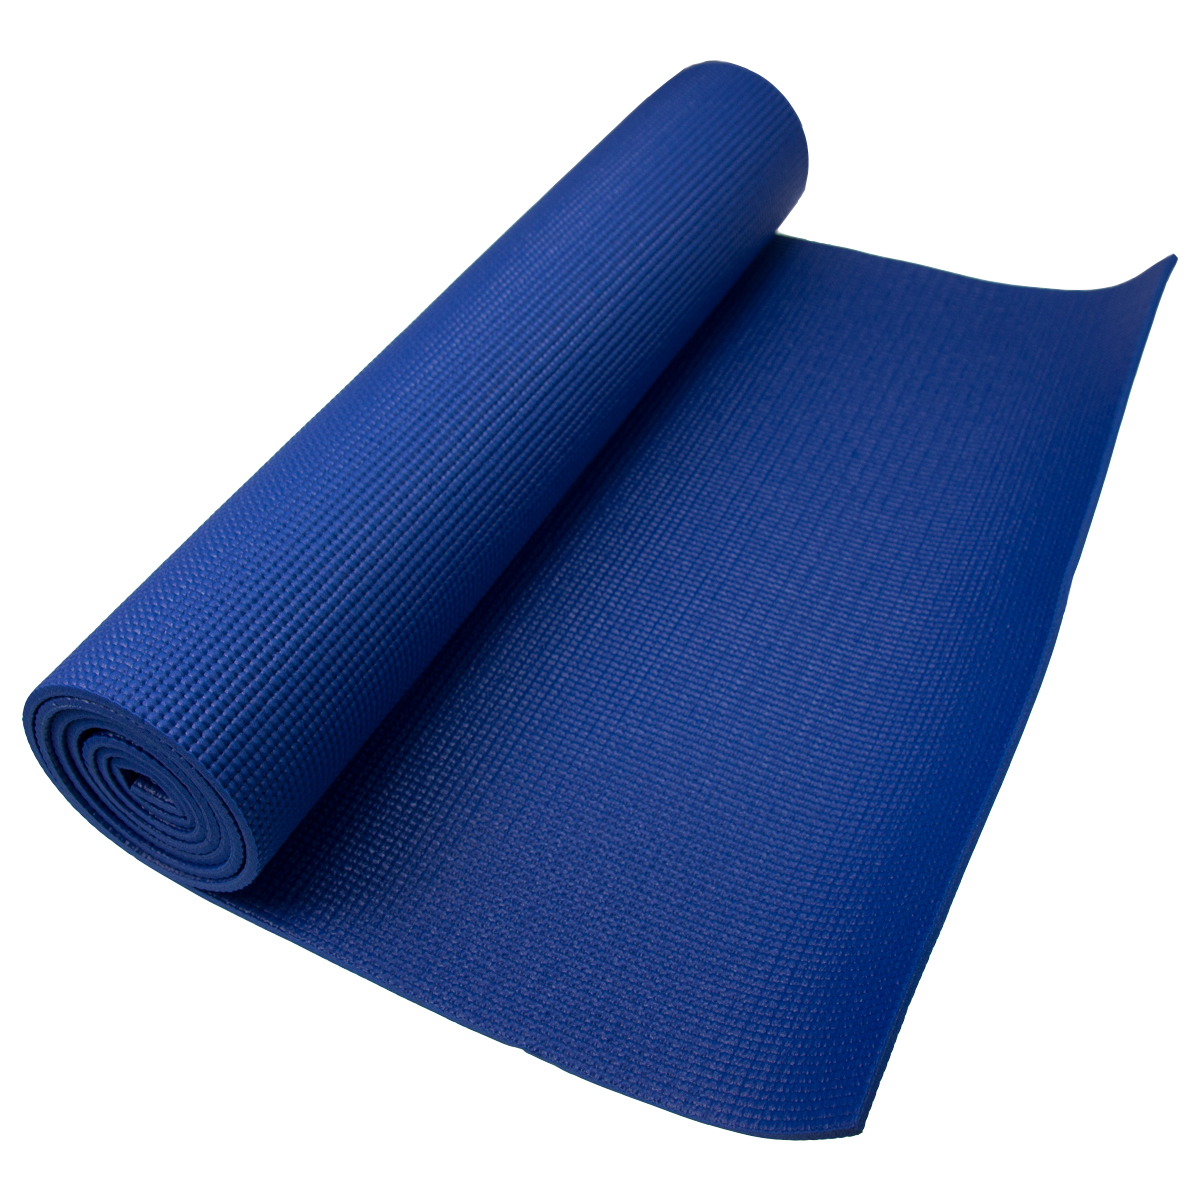 Eva Foam Yoga Mat 7mm Thick Soft Non Slip Eco Friendly